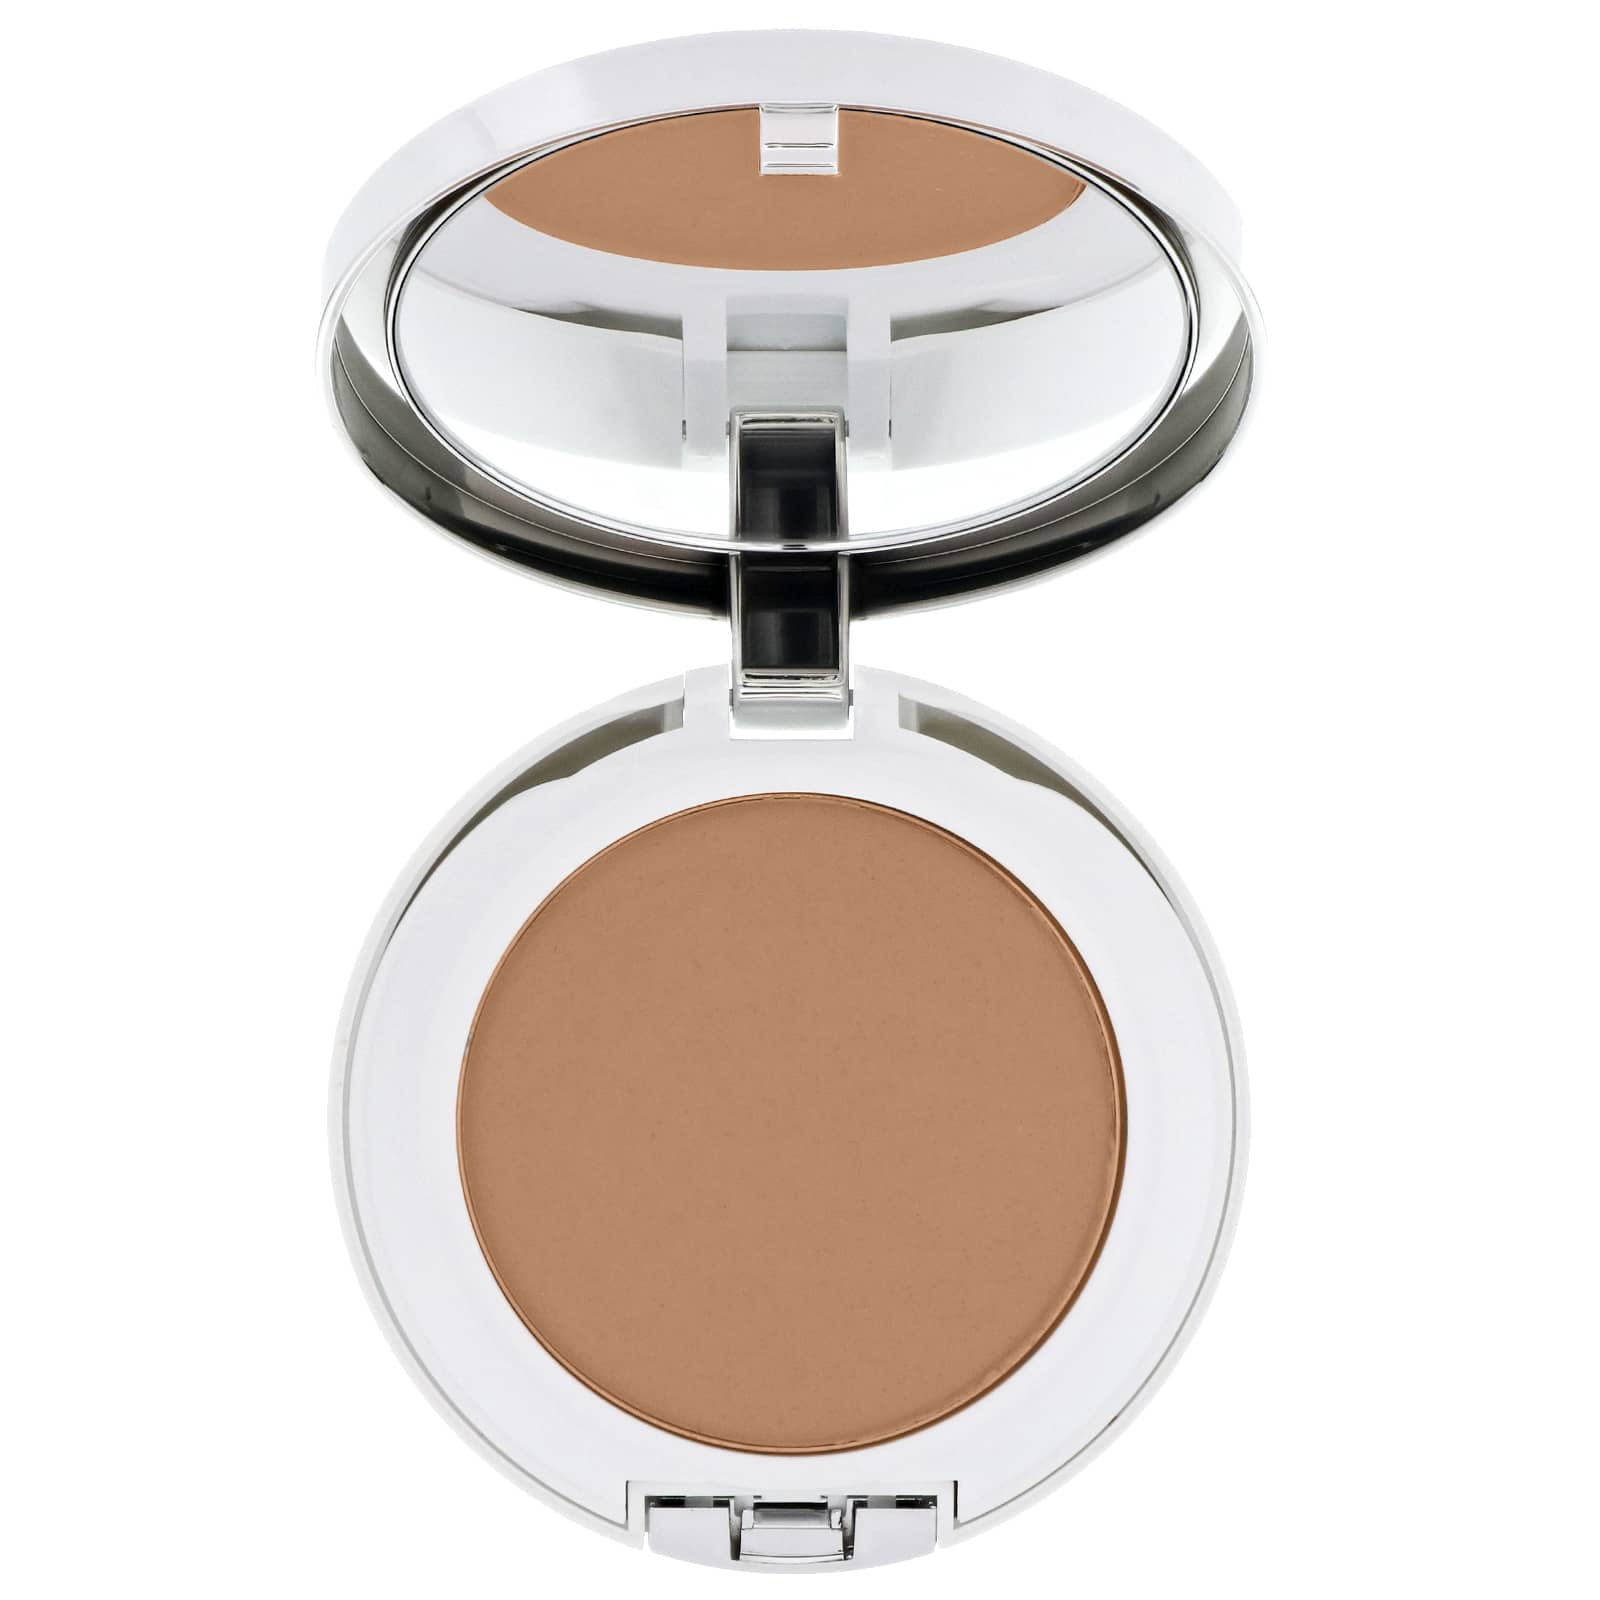 CLINIQUE BEYOND PERFECTING POWDER FOUNDATION